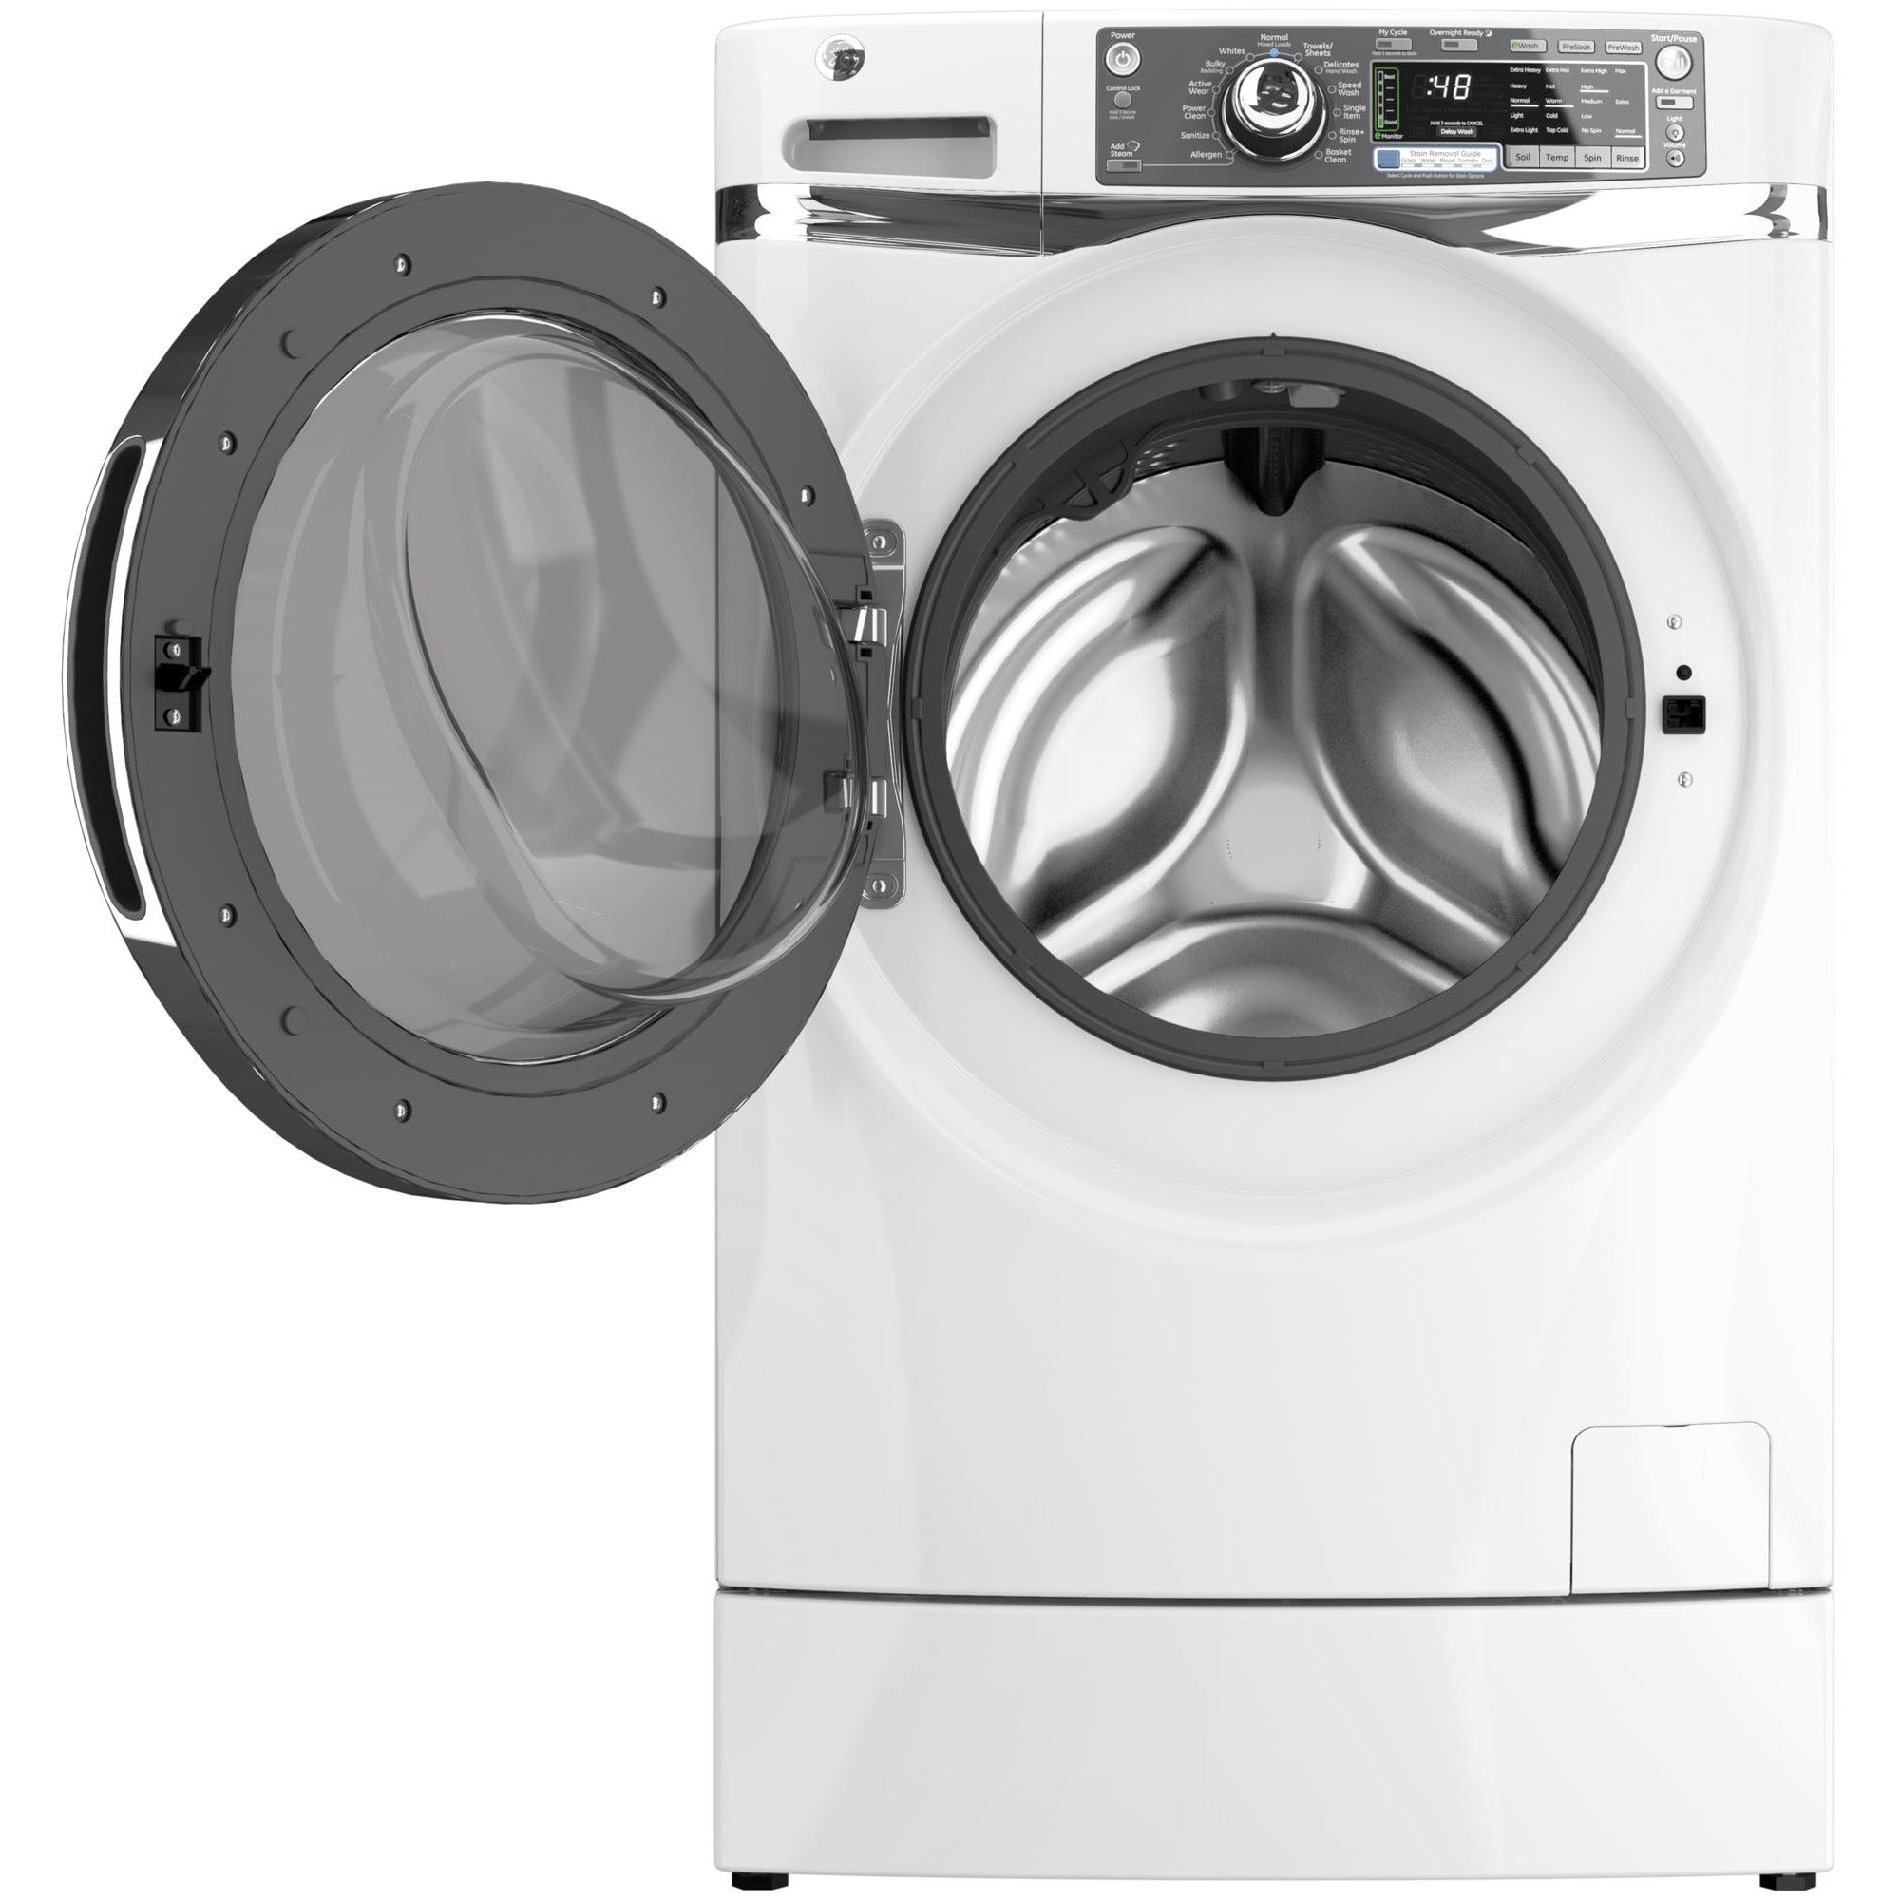 GE Appliances 4.8 cu. ft. RightHeight™ Design Front-Load Washer - White